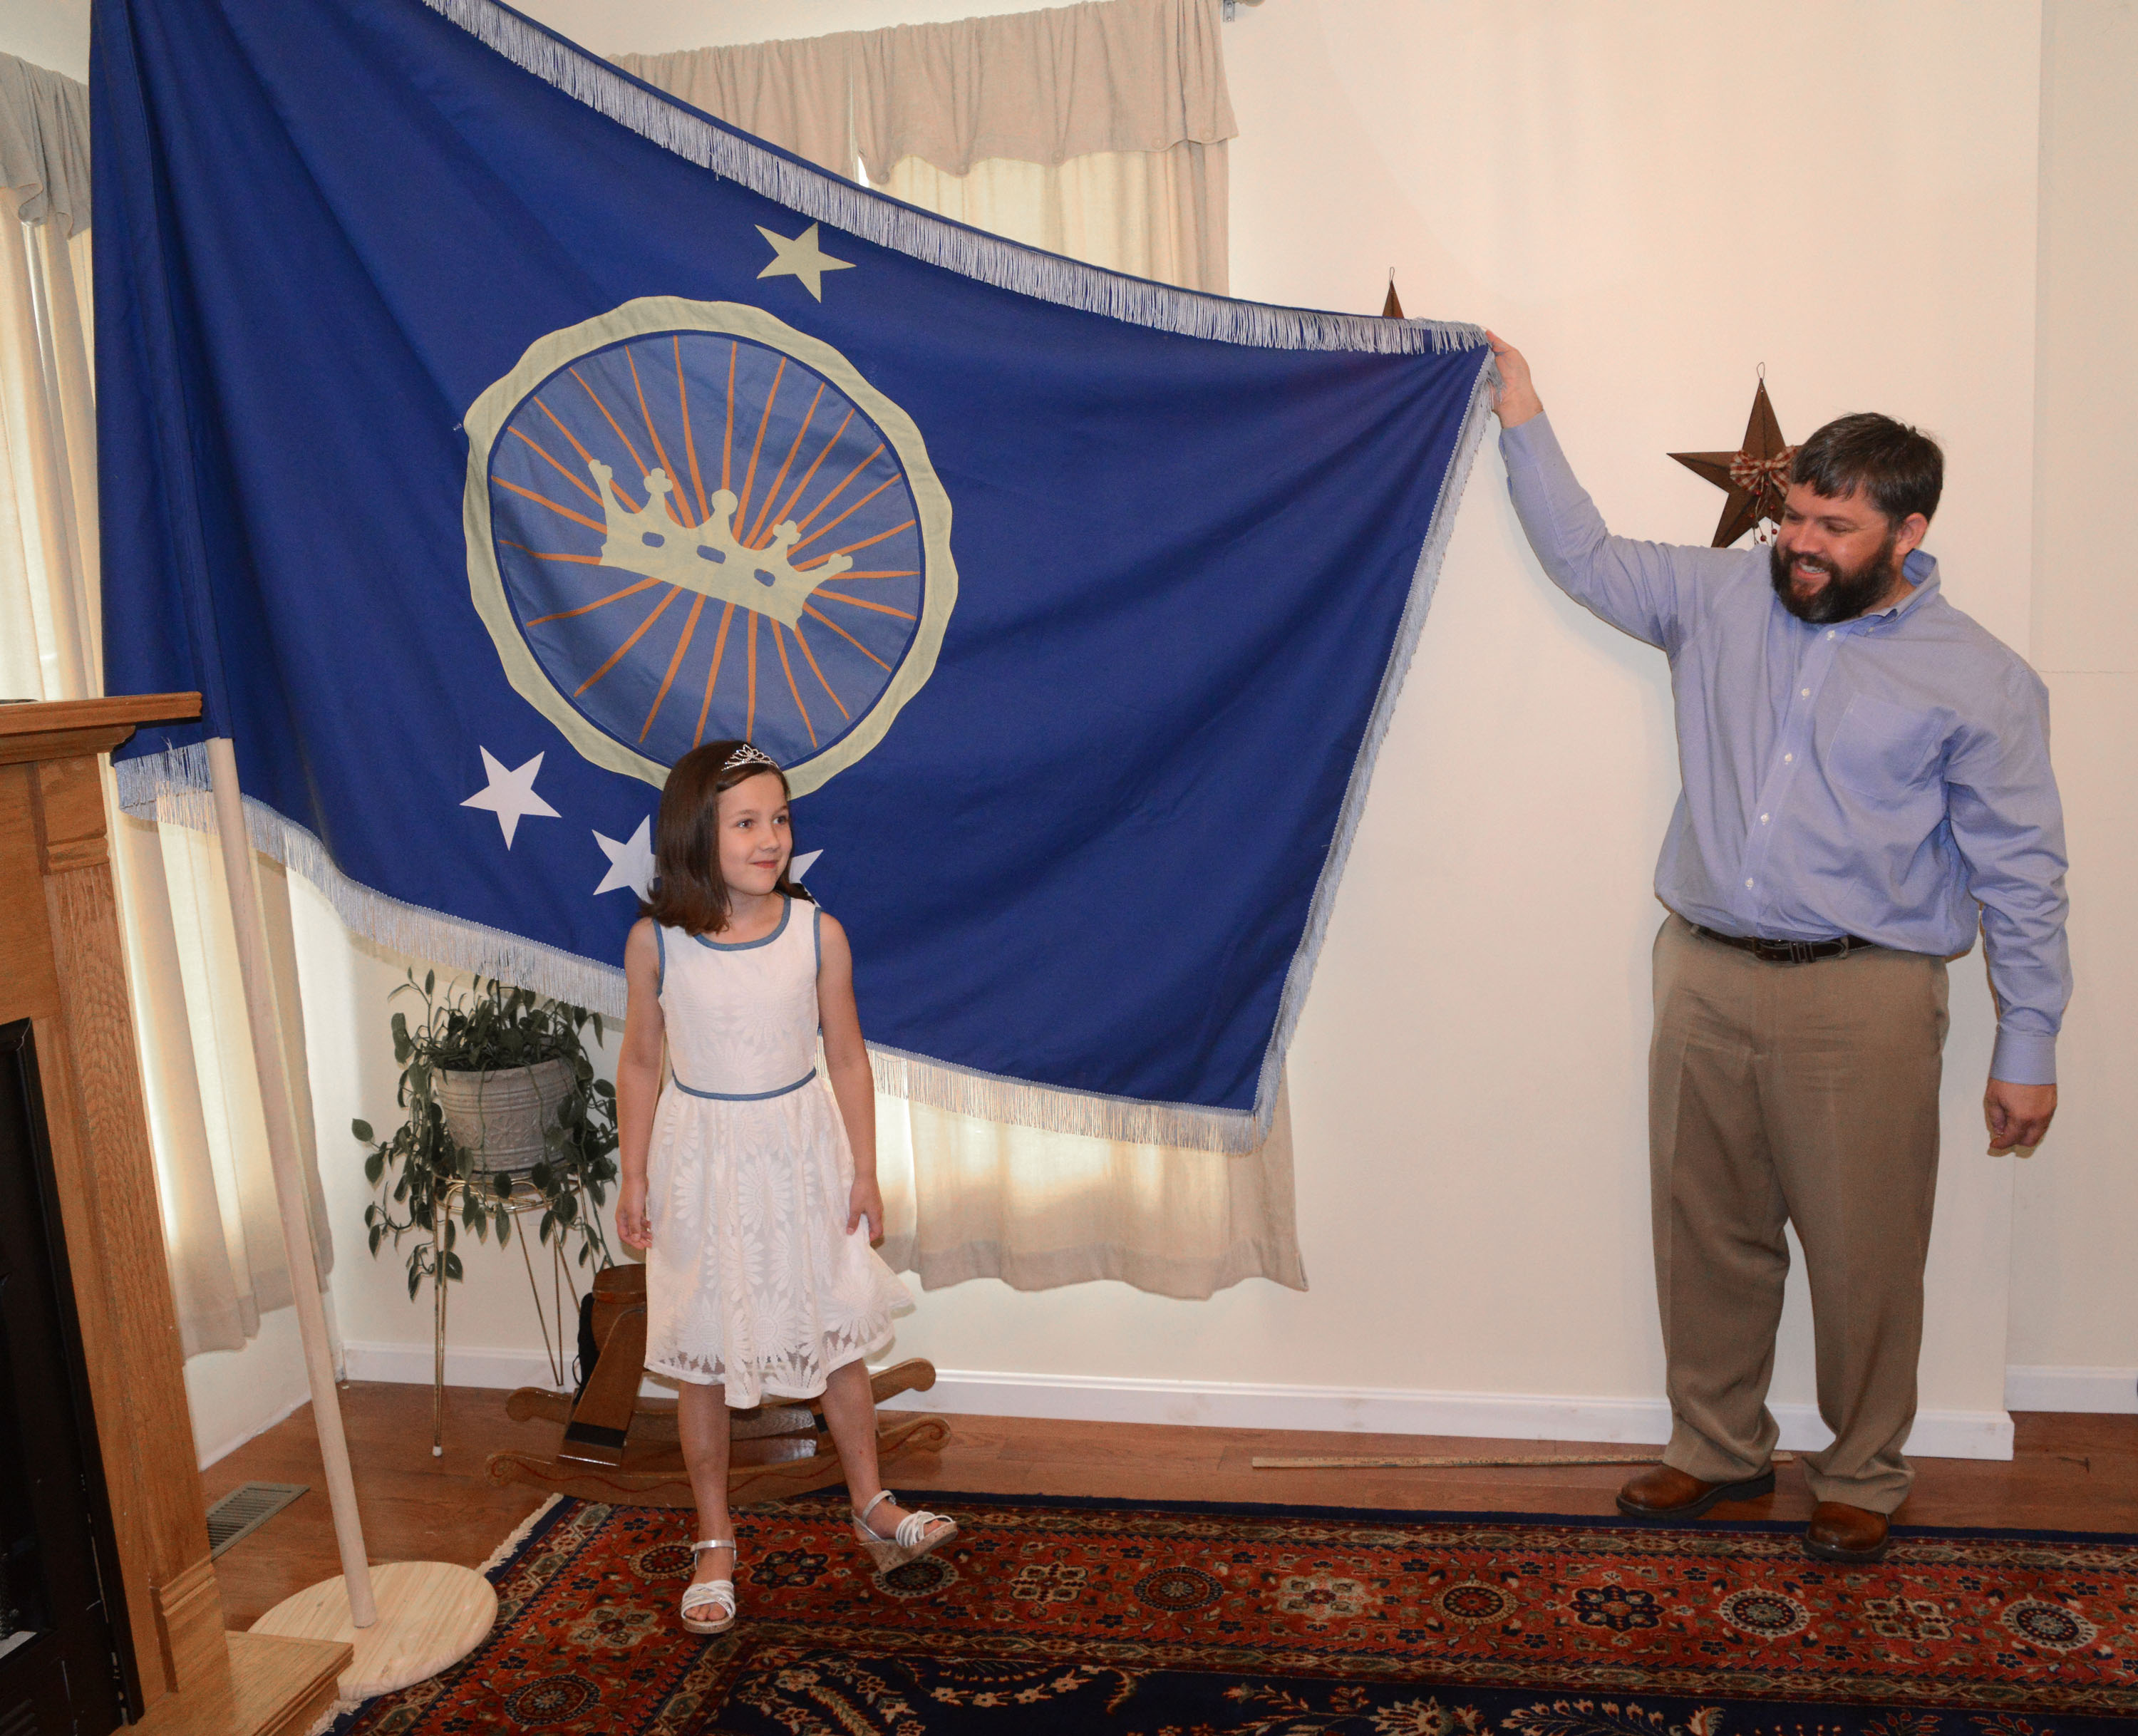 Jeremiah Heaton and his seven year-old daughter, Princess Emily, show the flag, July 2, 2014, in Abingdon, Va, that their family designed as they try to claim a piece of land in the Eastern African region of Bir Tawil.